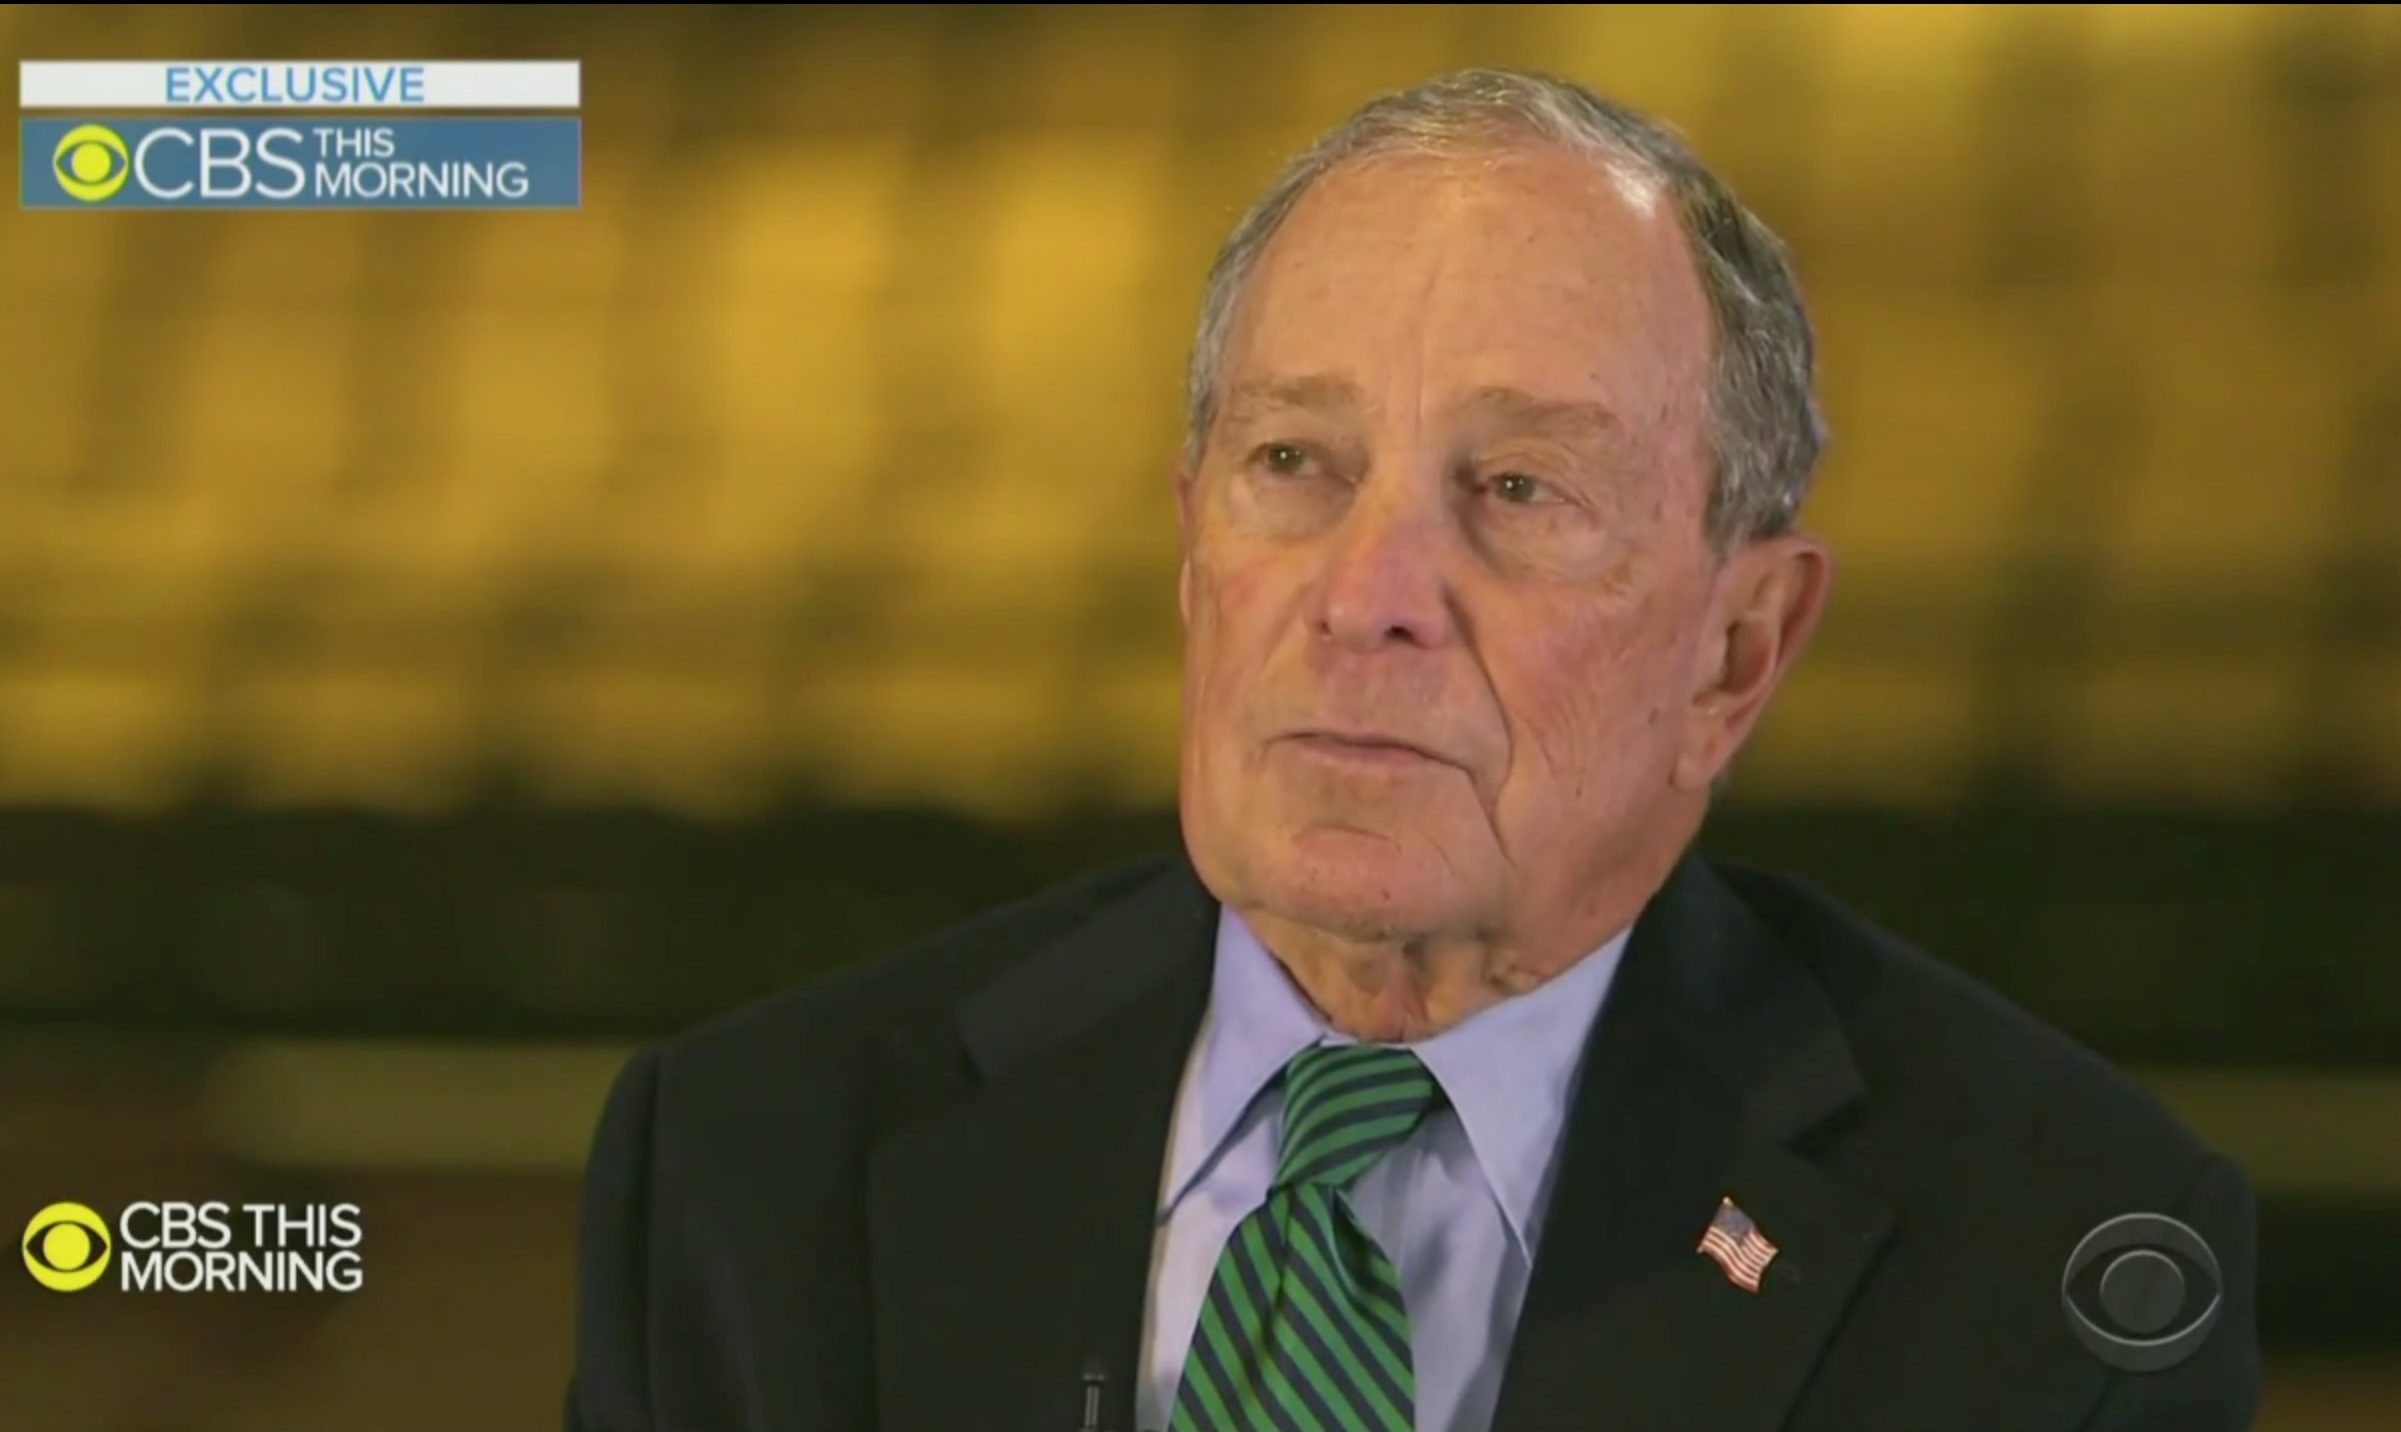 Bloomberg Throws Down the Gauntlet on His 2020 Rivals: 'Trump Would Eat Them Up'